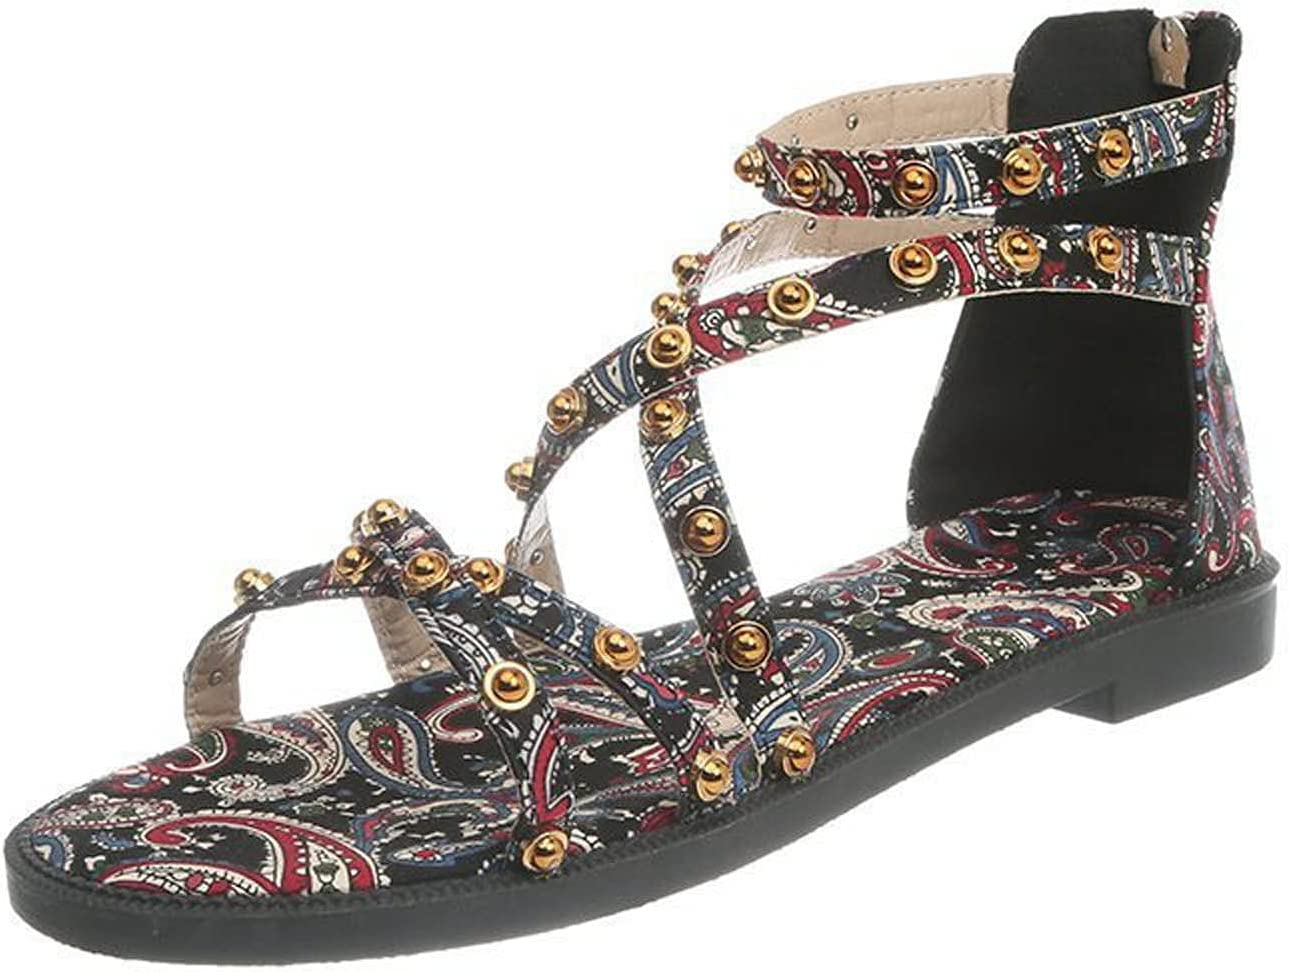 Women's Beaded Cross Strap Wedges Fla Heels Slippers Sandals Low Kansas City Popular products Mall